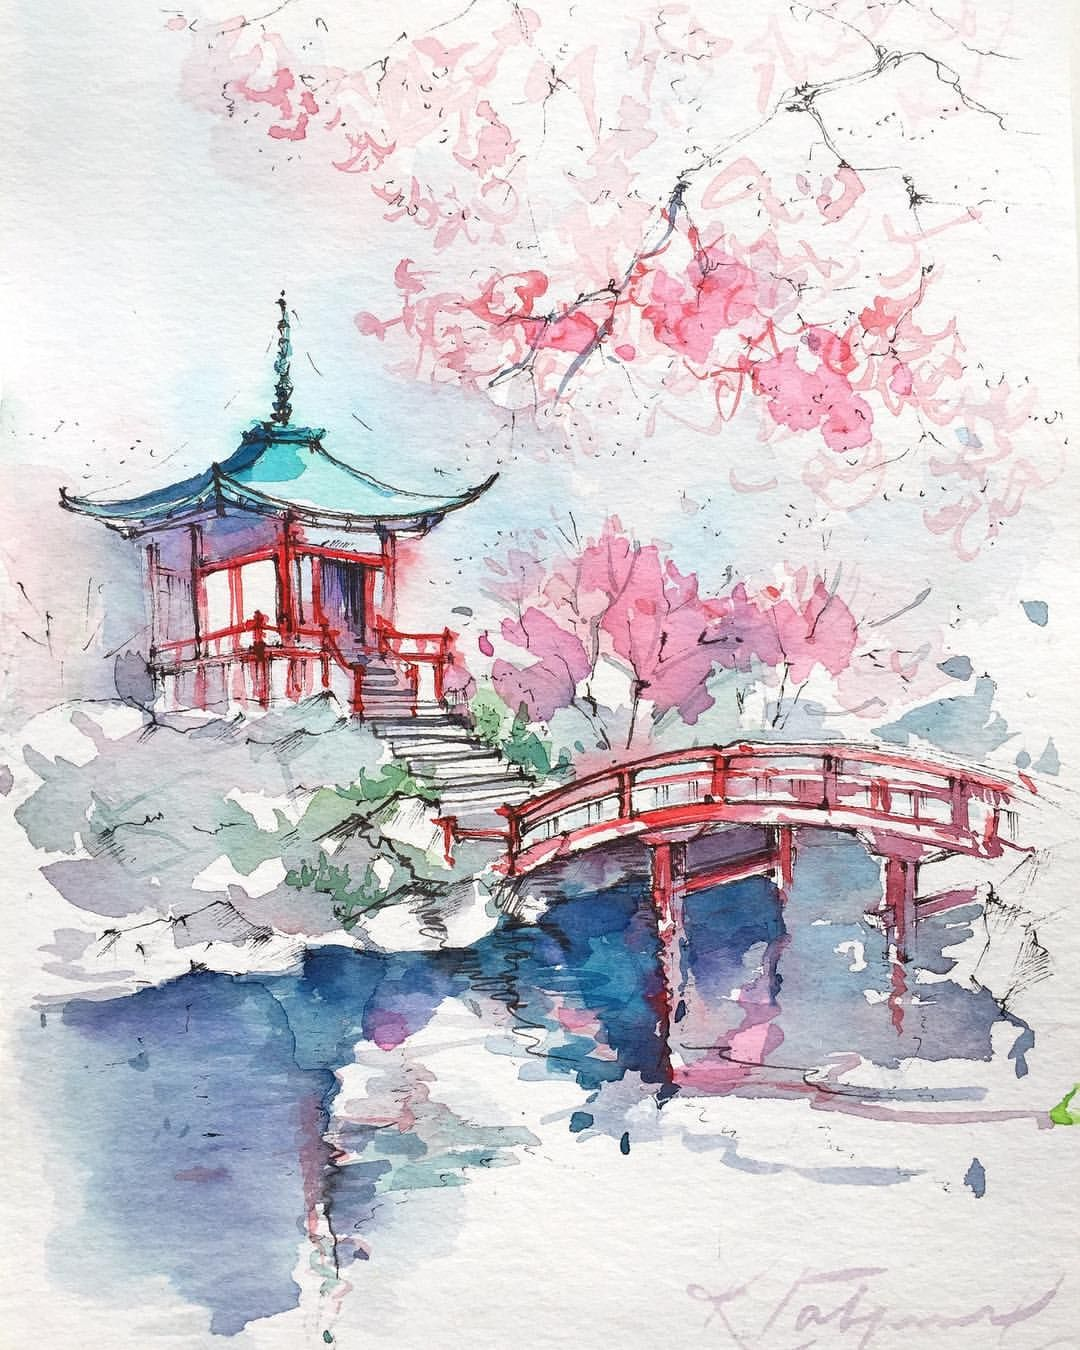 Pin By Goh Zhiqing On Cause Art Japan Painting Japan Watercolor